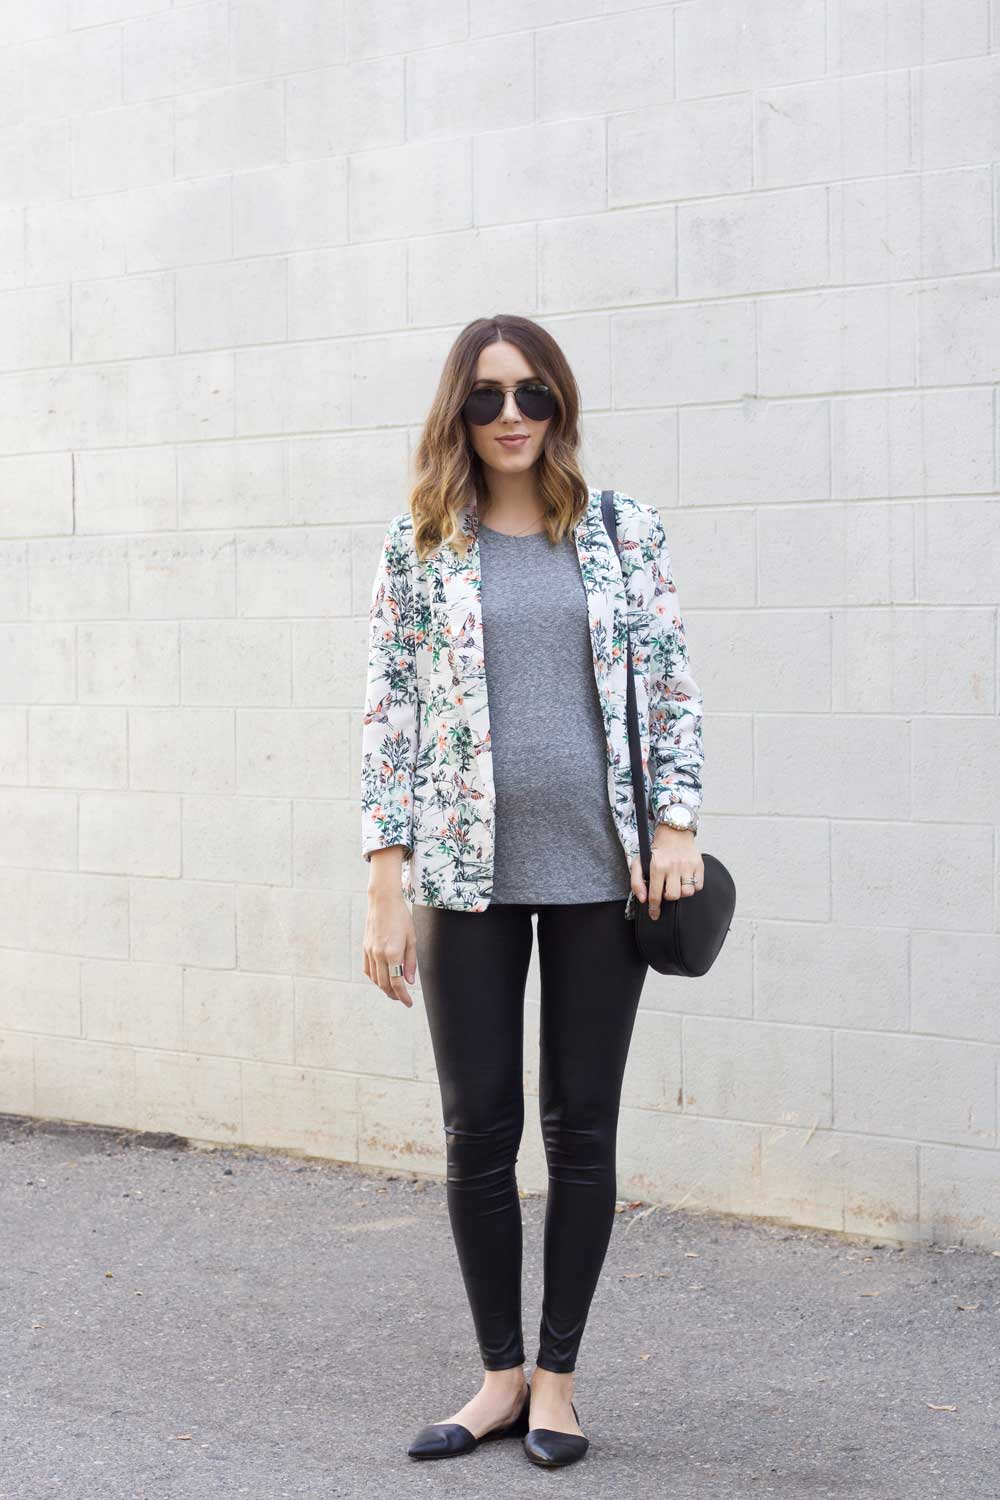 5 leggings floral blazer